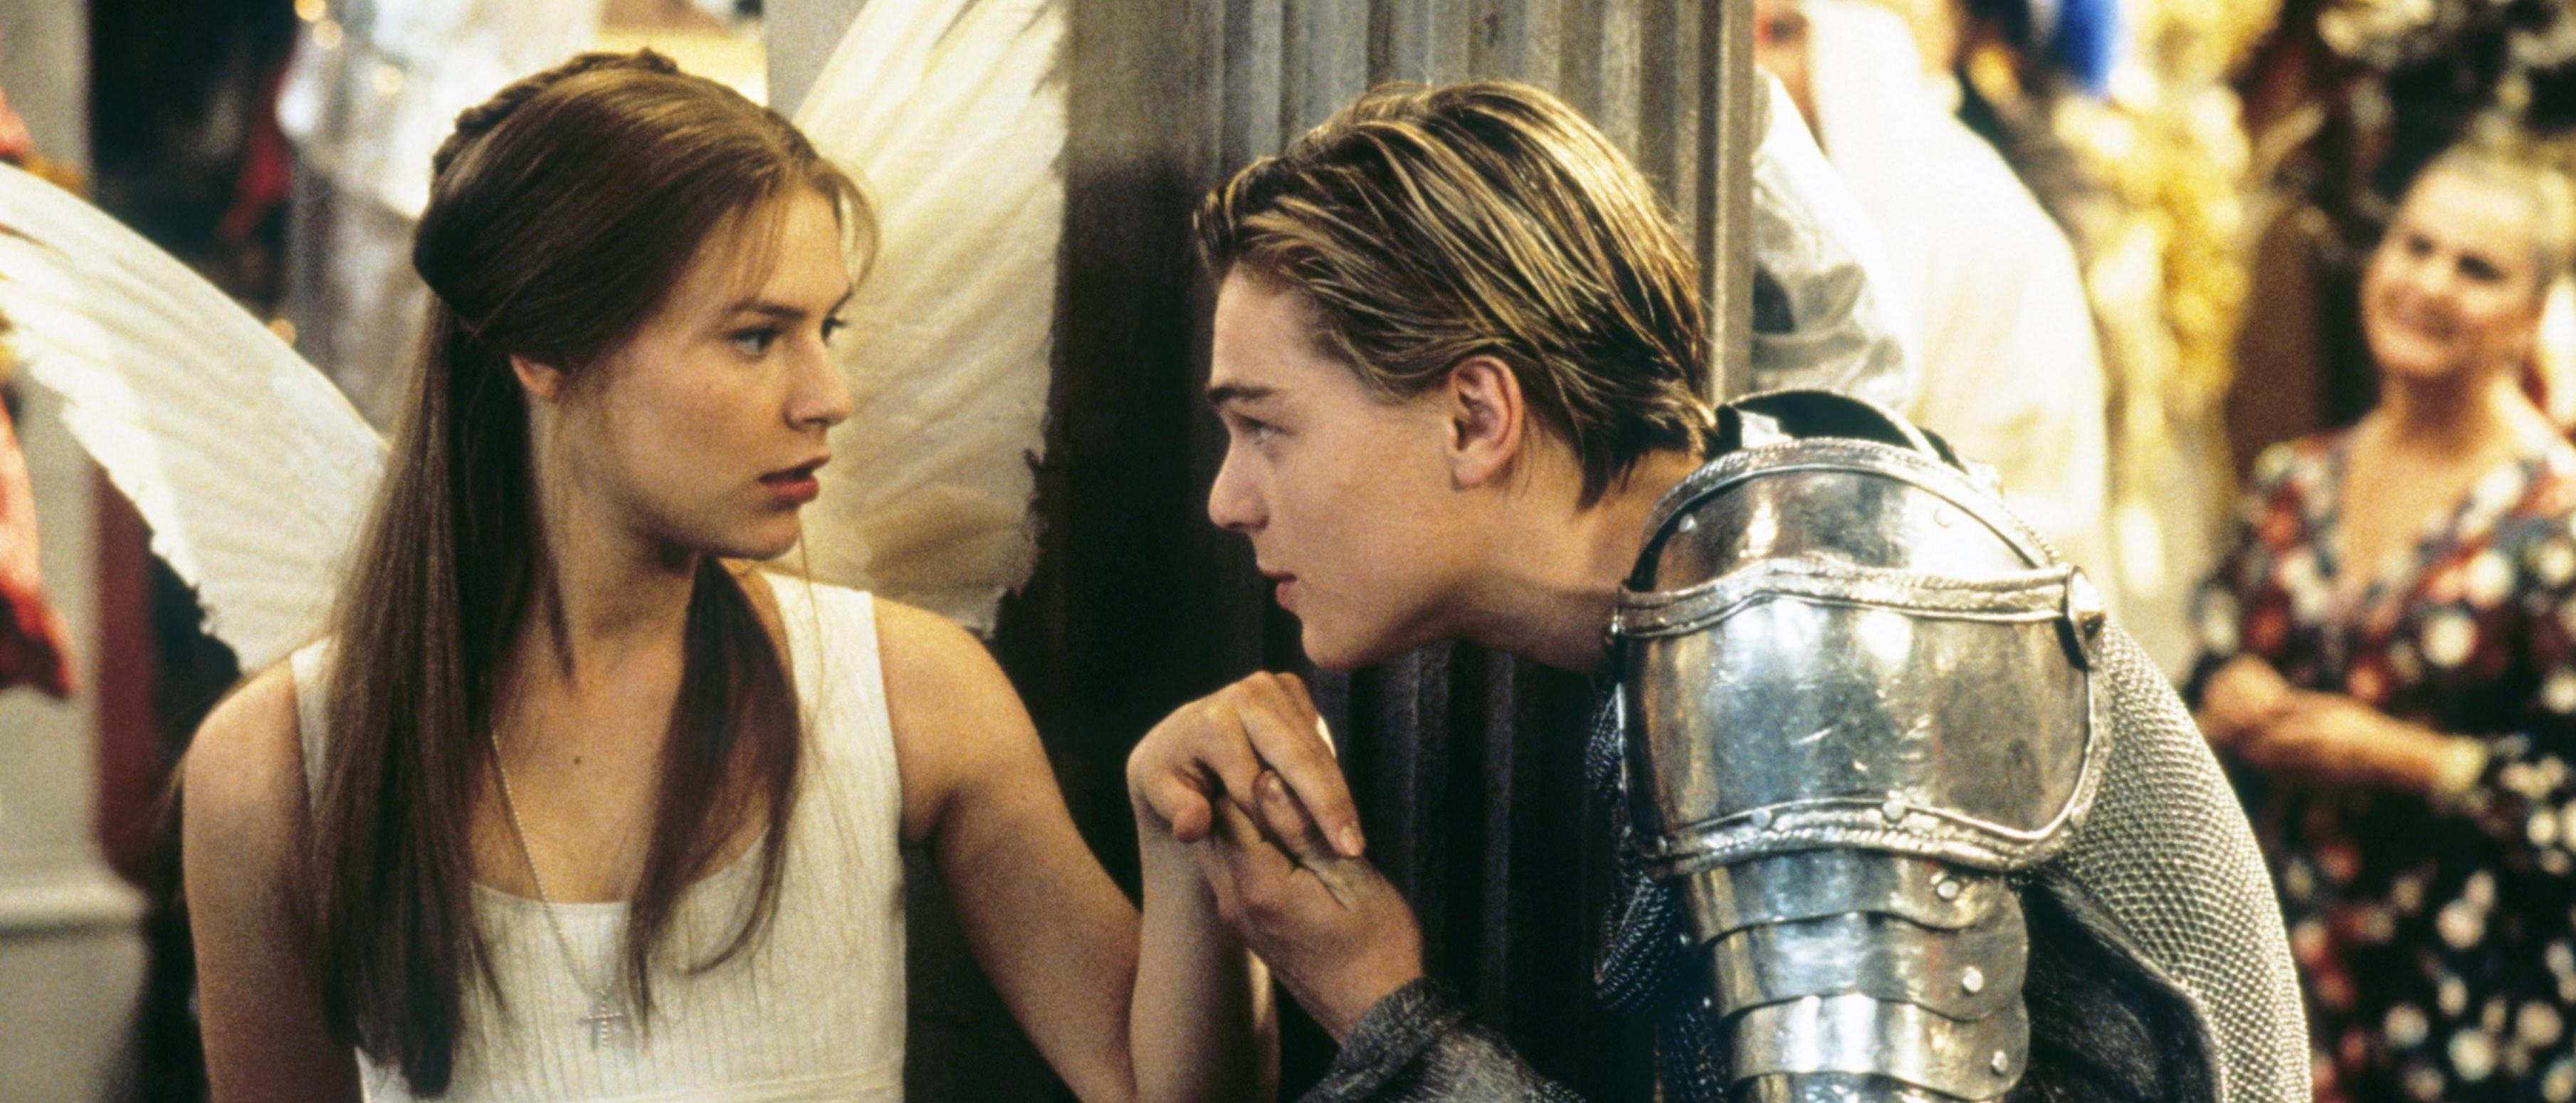 luhrmann's romeo and juliet film critique Romeo + juliet: film guide  a film guide that looks at romeo and juliet (1968), exploring its key topics and themes through informal discussion.